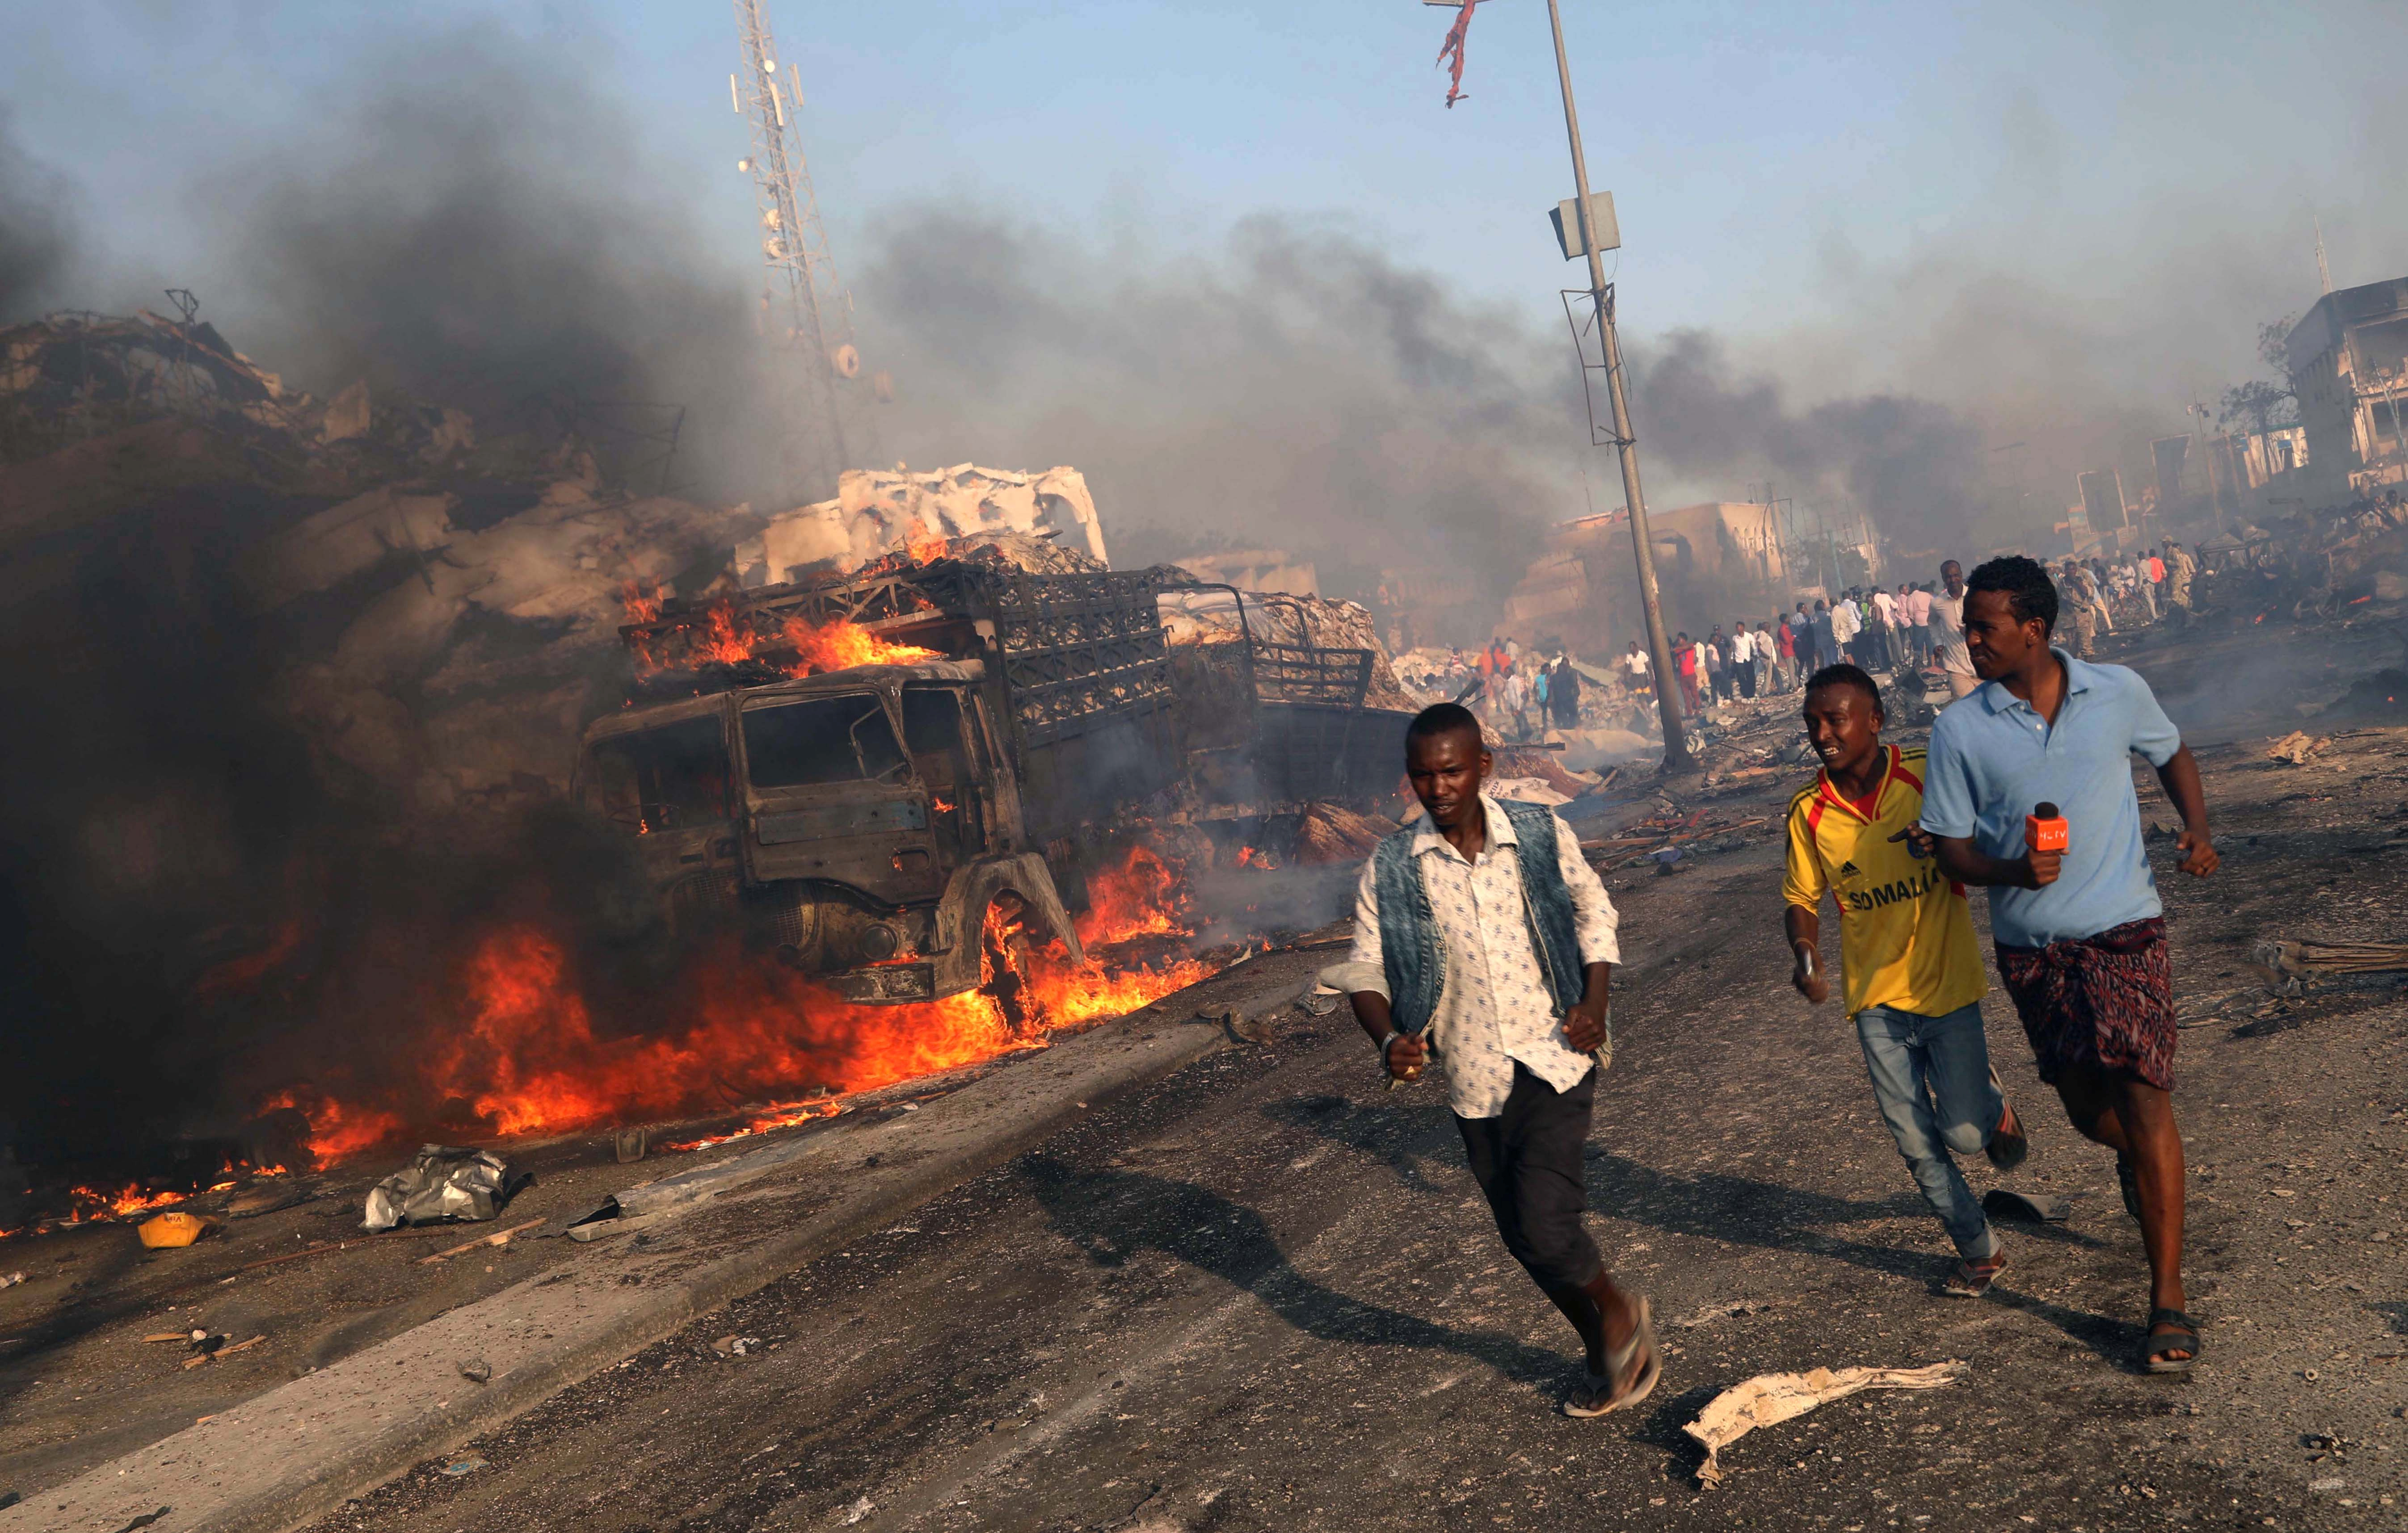 Civilians evacuate from the scene of an explosion in the Hodan district of Mogadishu, Somalia.